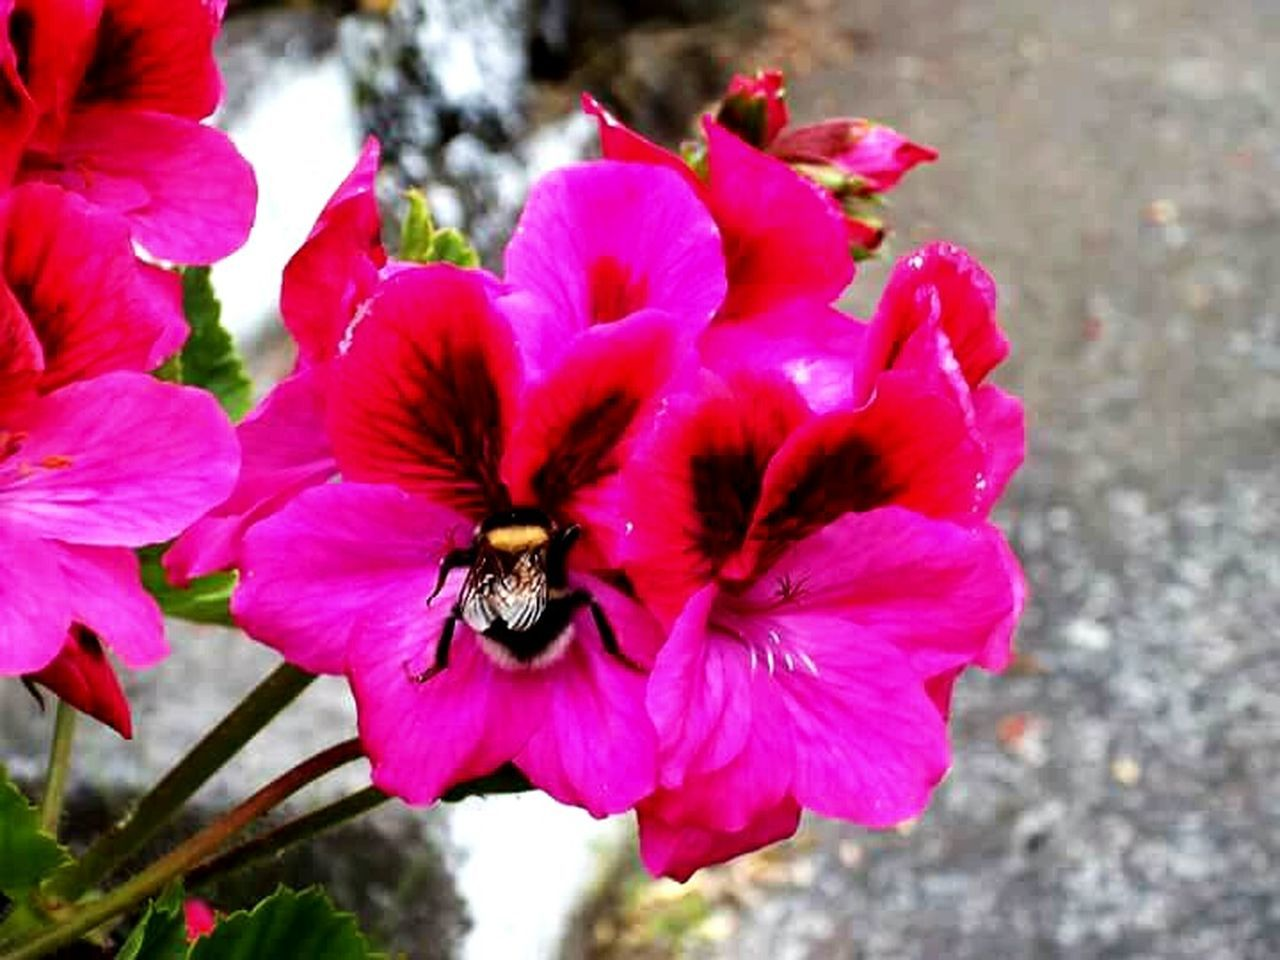 insect, one animal, flower, animals in the wild, petal, animal themes, nature, growth, bee, animal wildlife, outdoors, beauty in nature, fragility, day, no people, pink color, pollination, flower head, plant, freshness, blooming, close-up